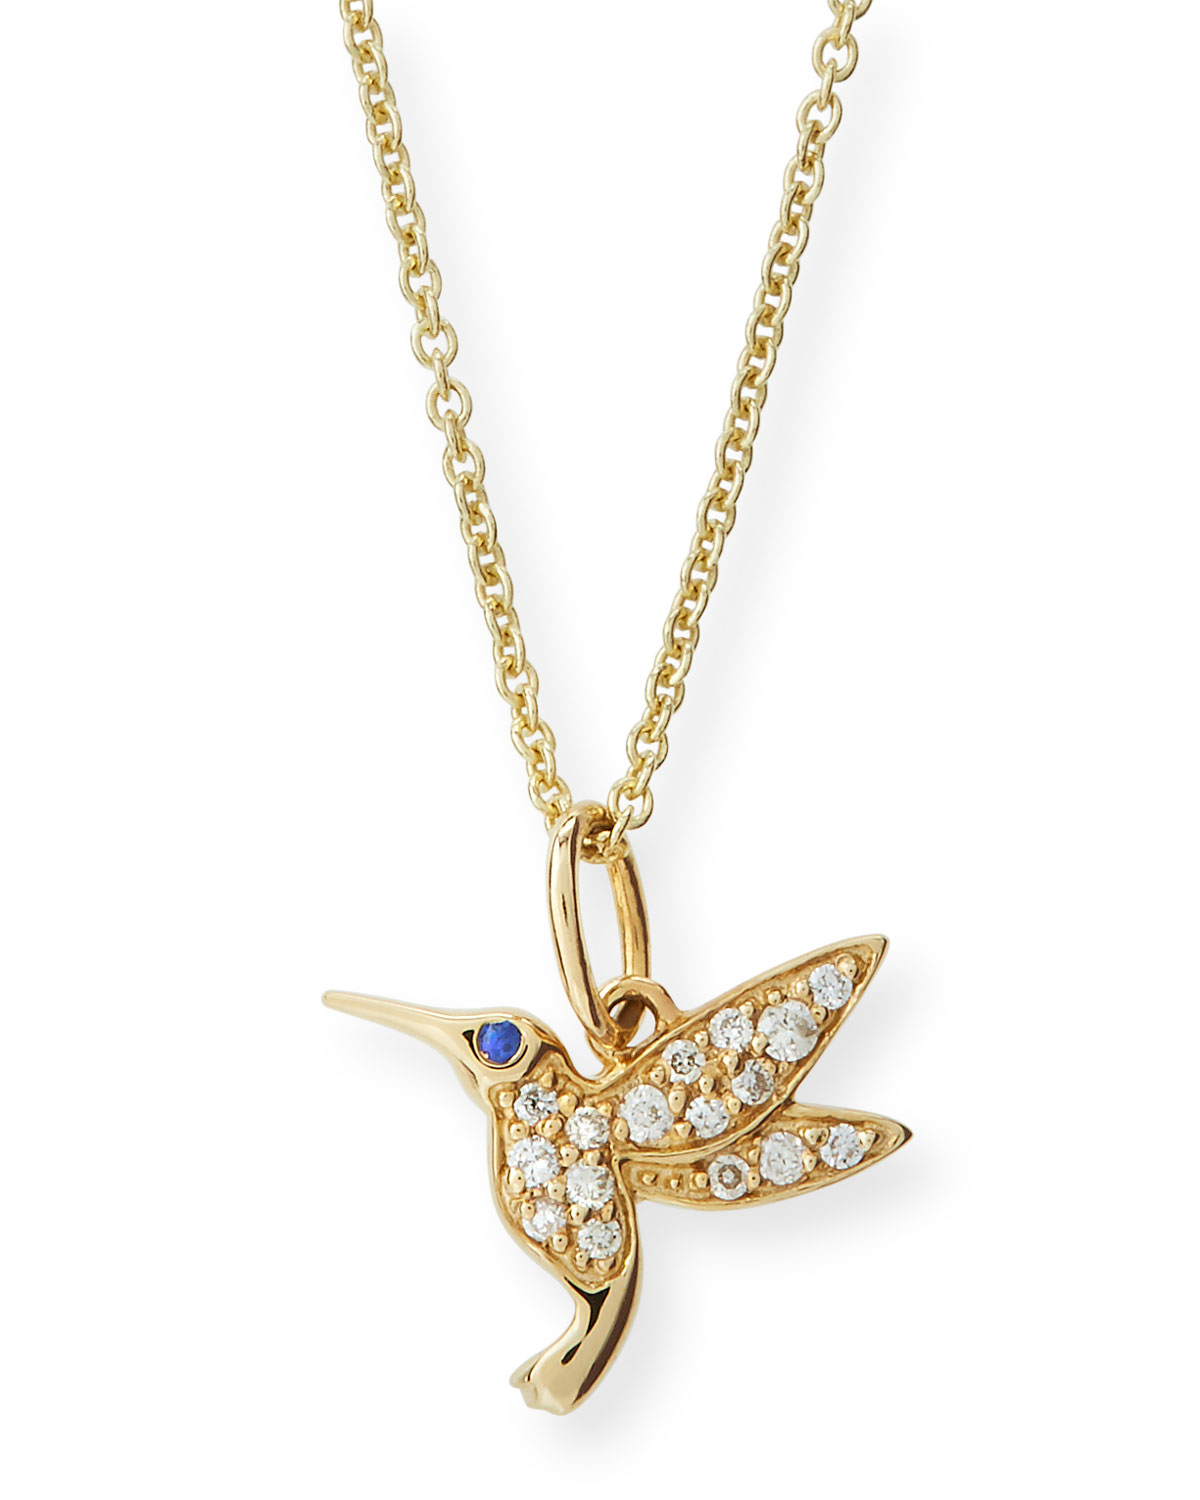 Girls' 14K Gold Hummingbird Charm Necklace